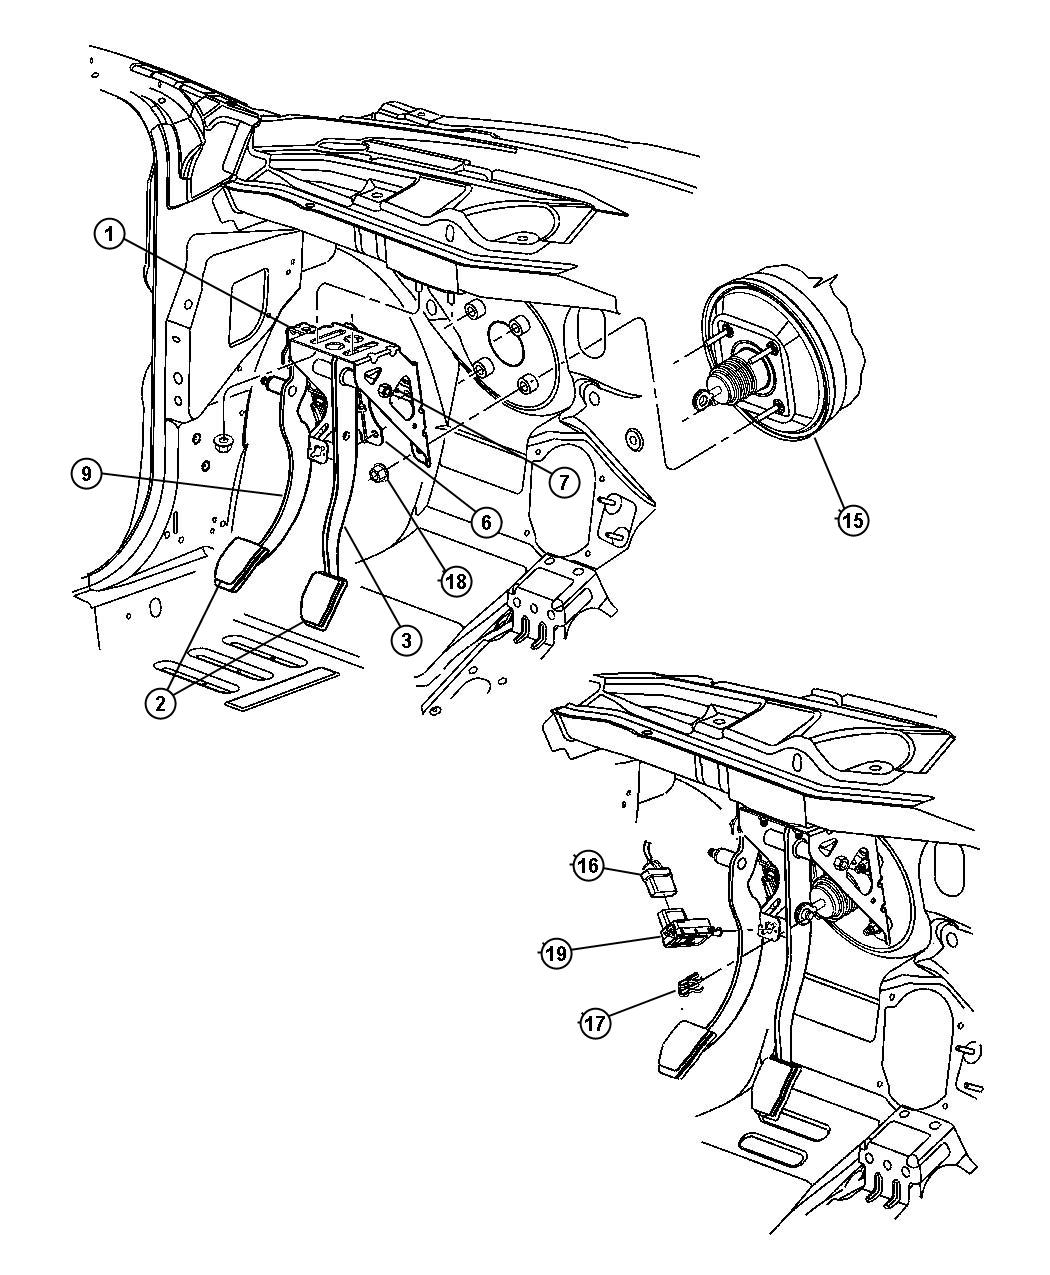 Service manual [2003 Chrysler Pt Cruiser Clutch Pedal